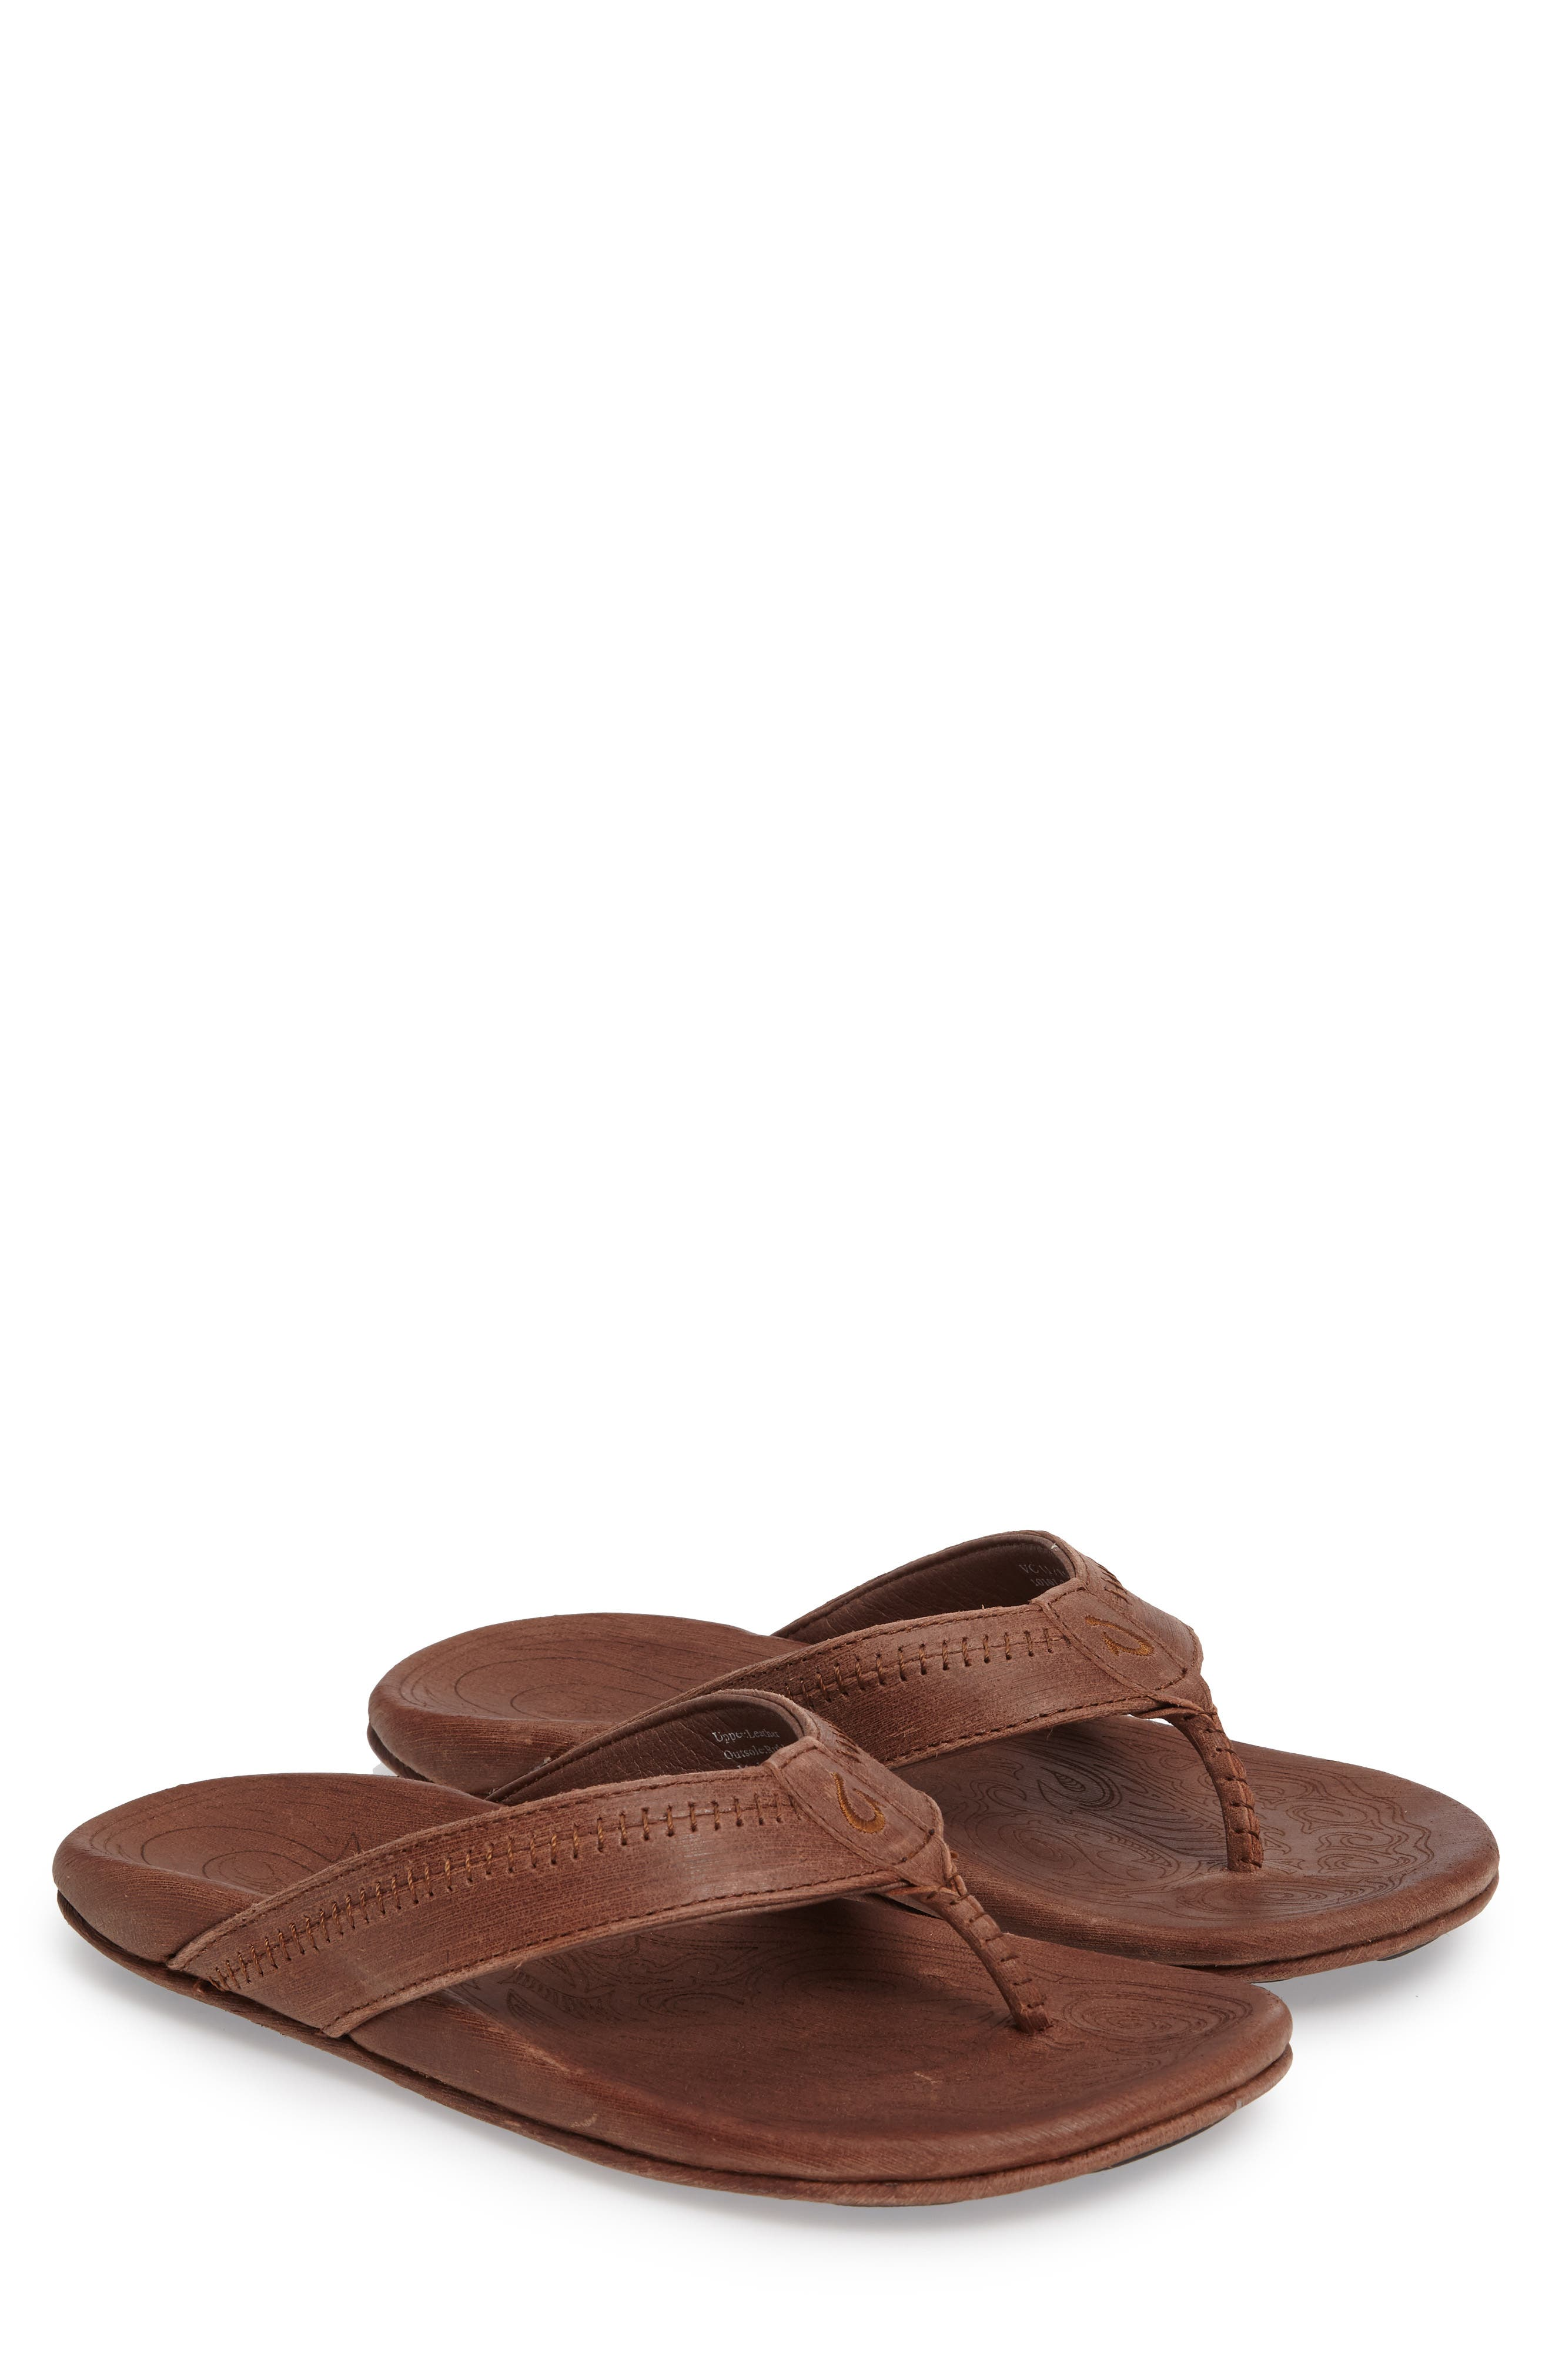 'Hiapo' Flip Flop,                         Main,                         color, TOFFEE/ TOFFEE LEATHER